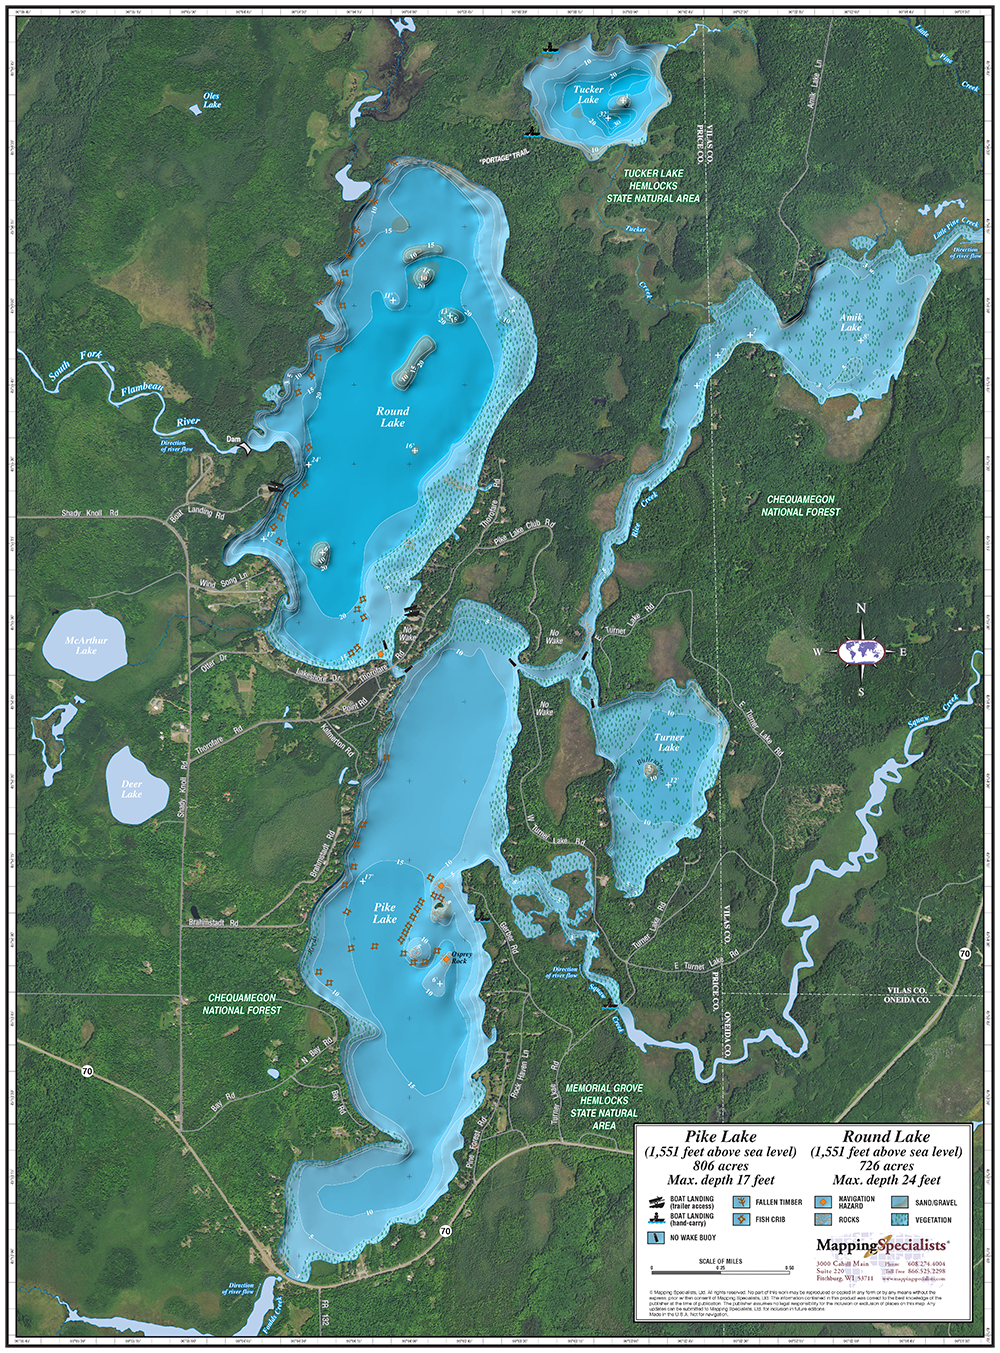 Pike and Round Lakes Enhanced Wall Map